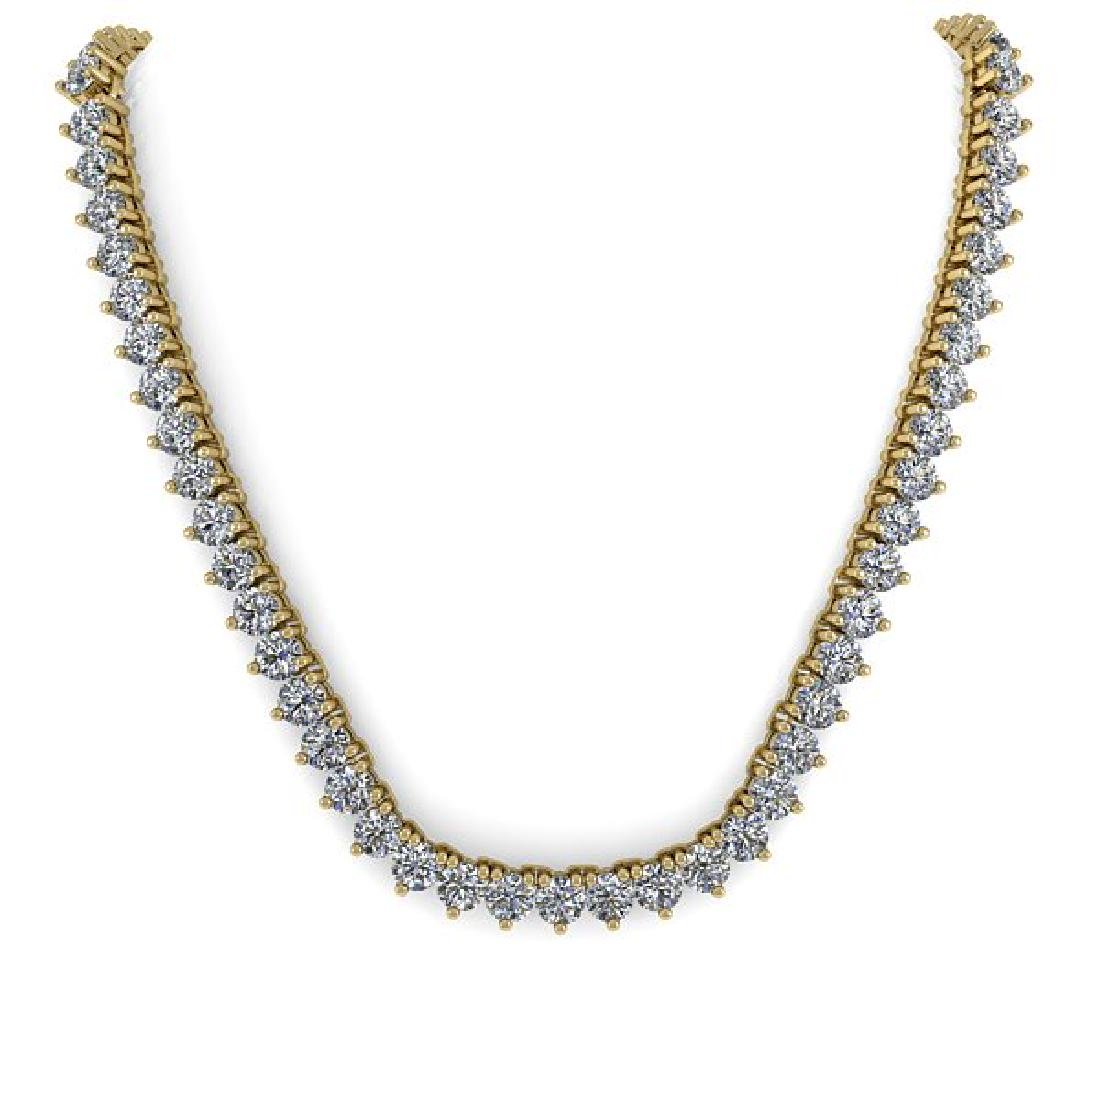 48 CTW Solitaire SI Diamond Necklace 18K Yellow Gold - 3